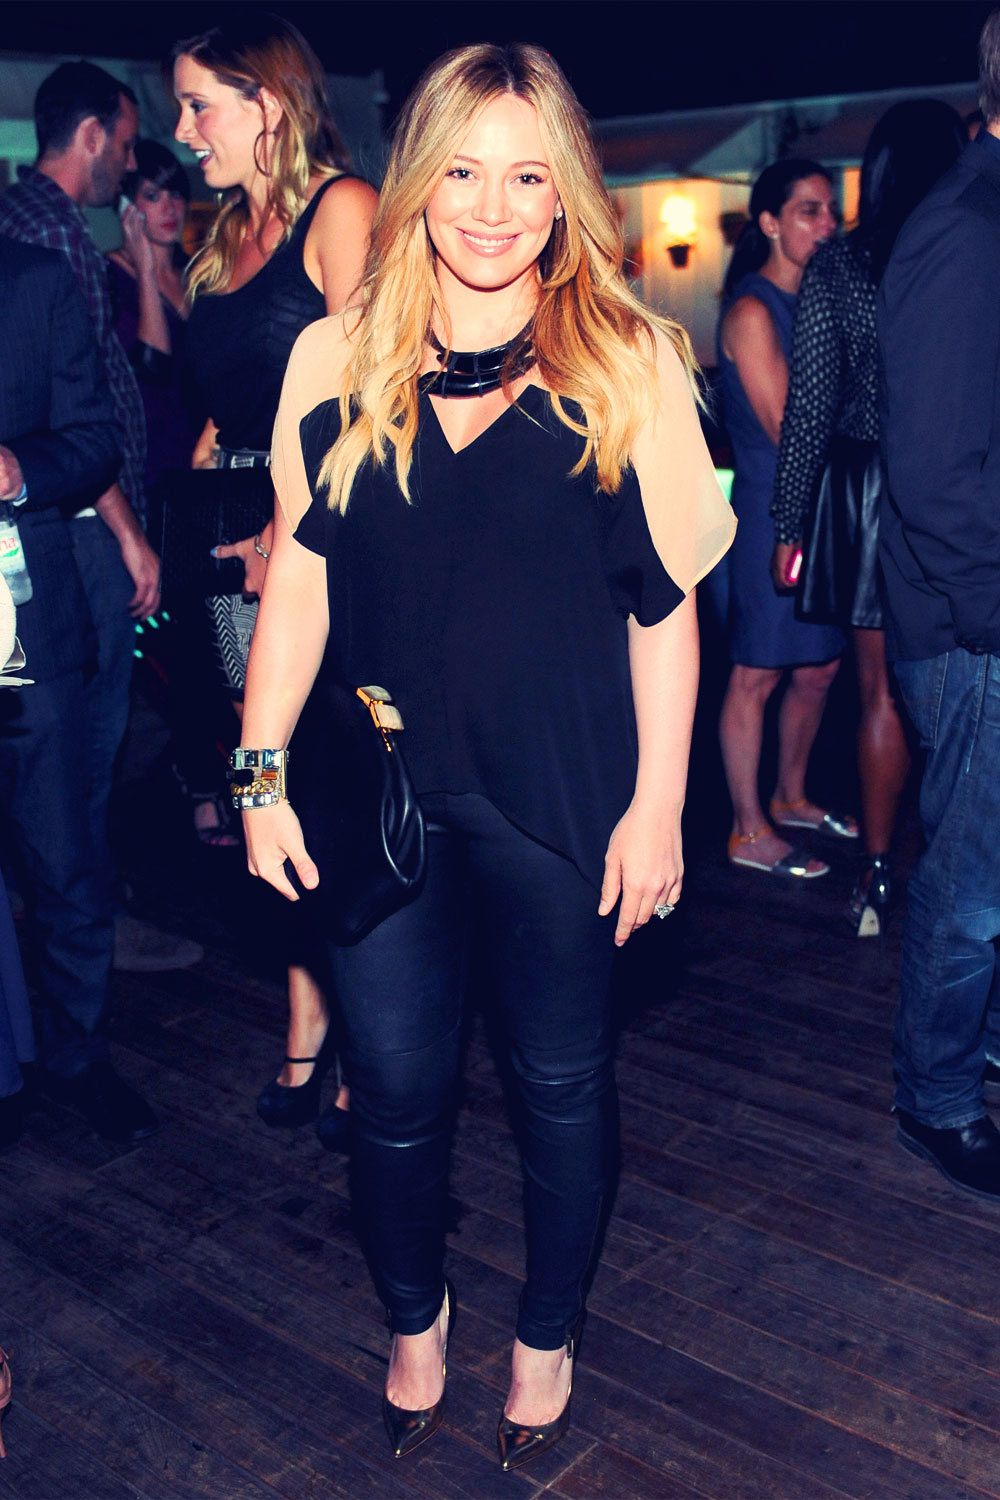 Hilary Duff at The Hollywood Reporter's celebration of The Mindy Project